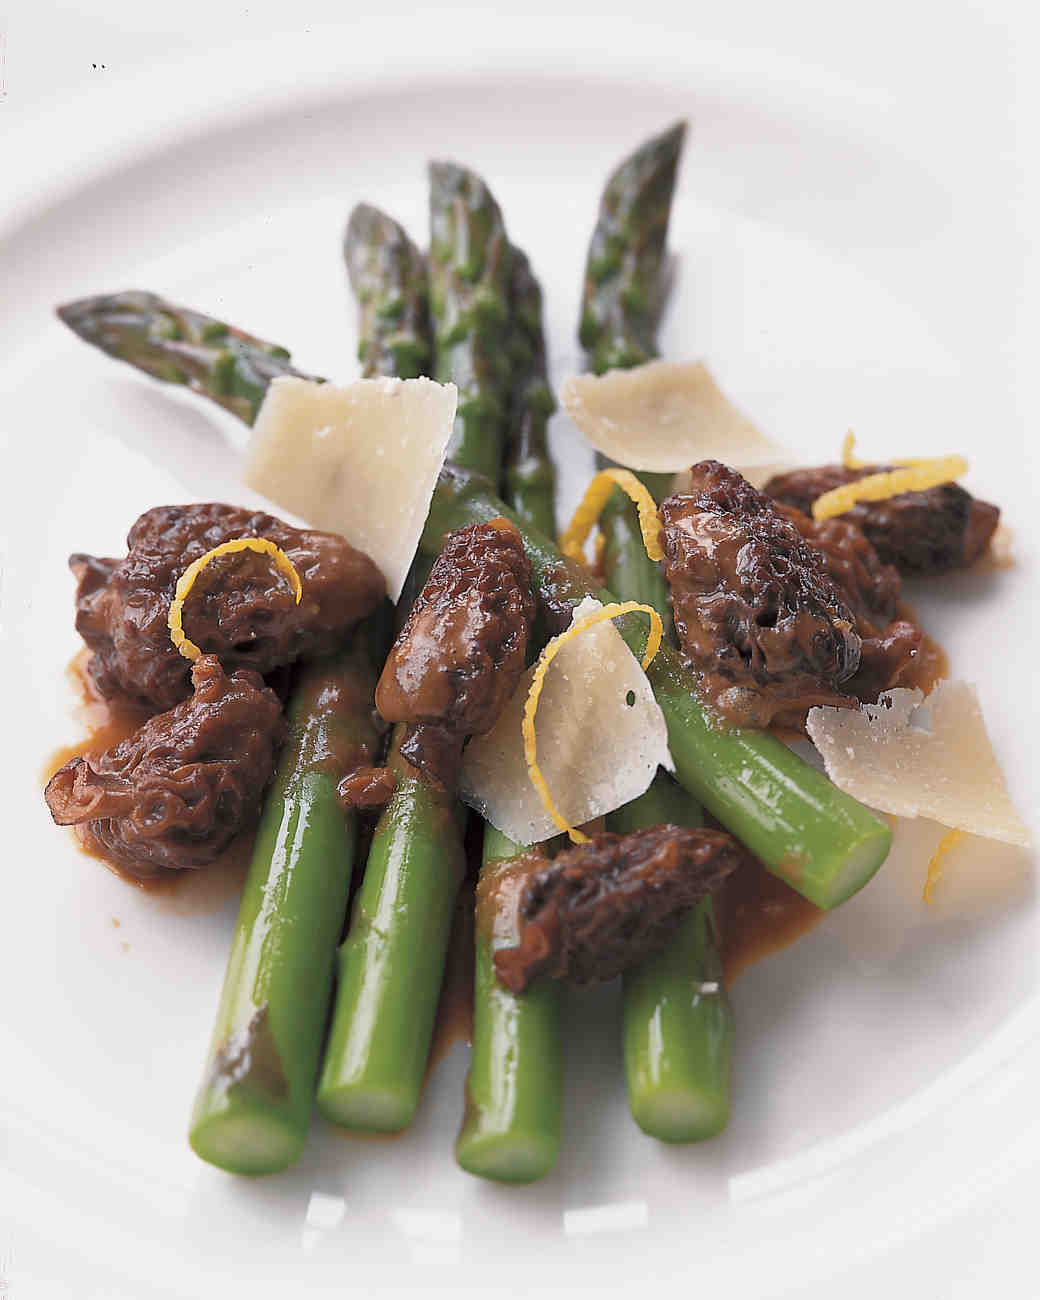 Asparagus Spears with Sauteed Morels